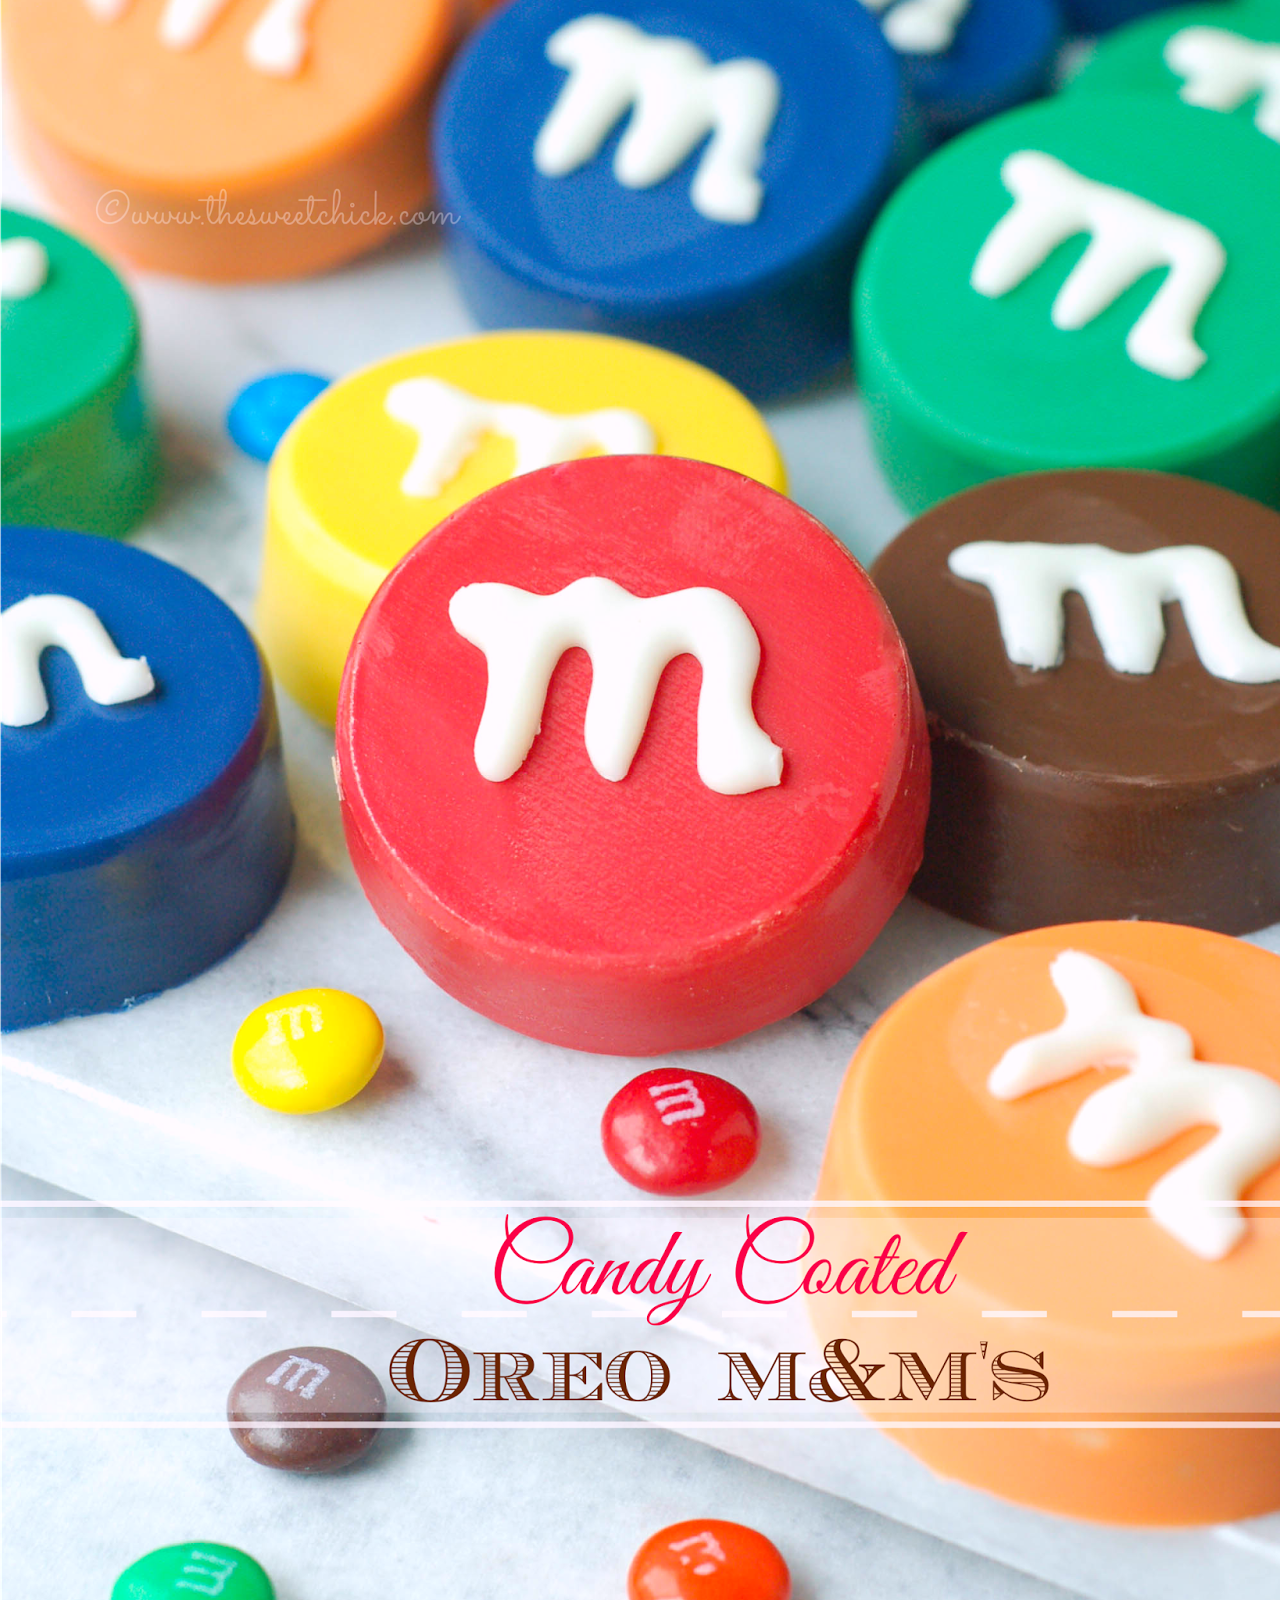 Candy Coated Oreo M&Ms by The Sweet Chick